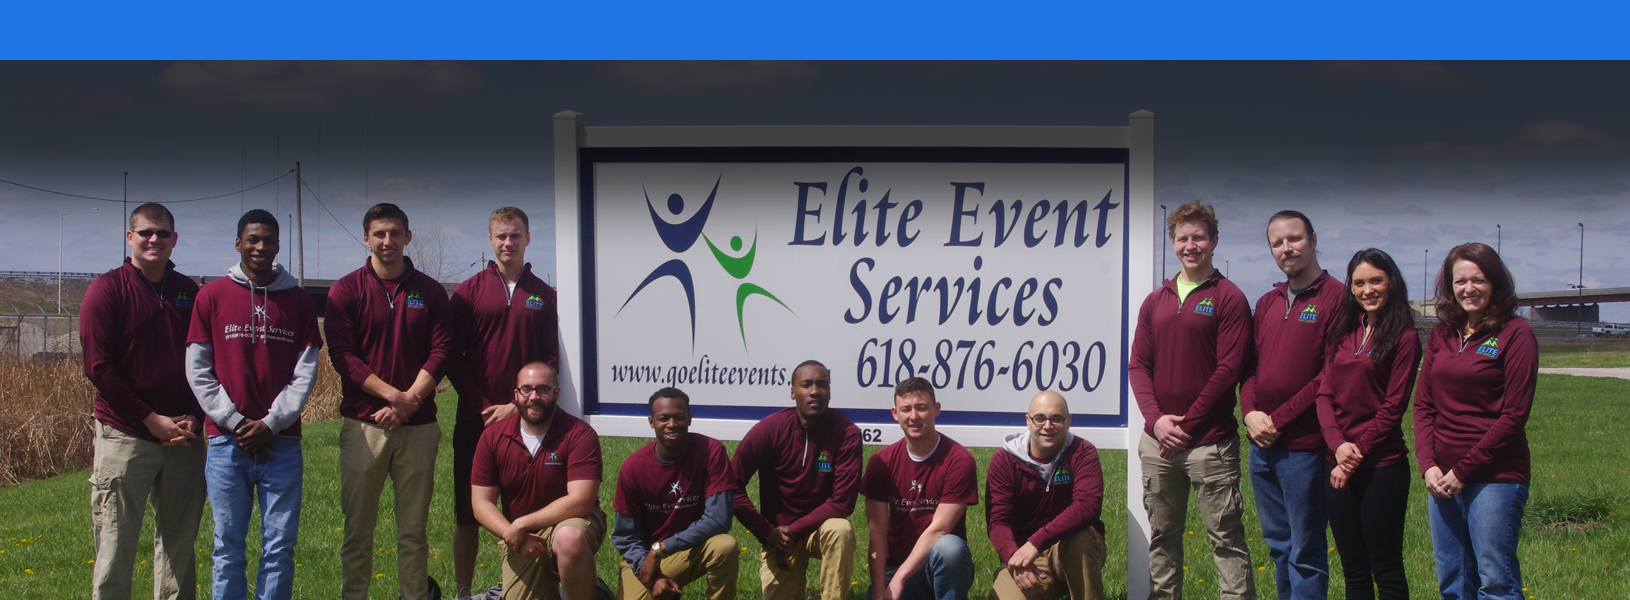 Elite Event Services Catalog